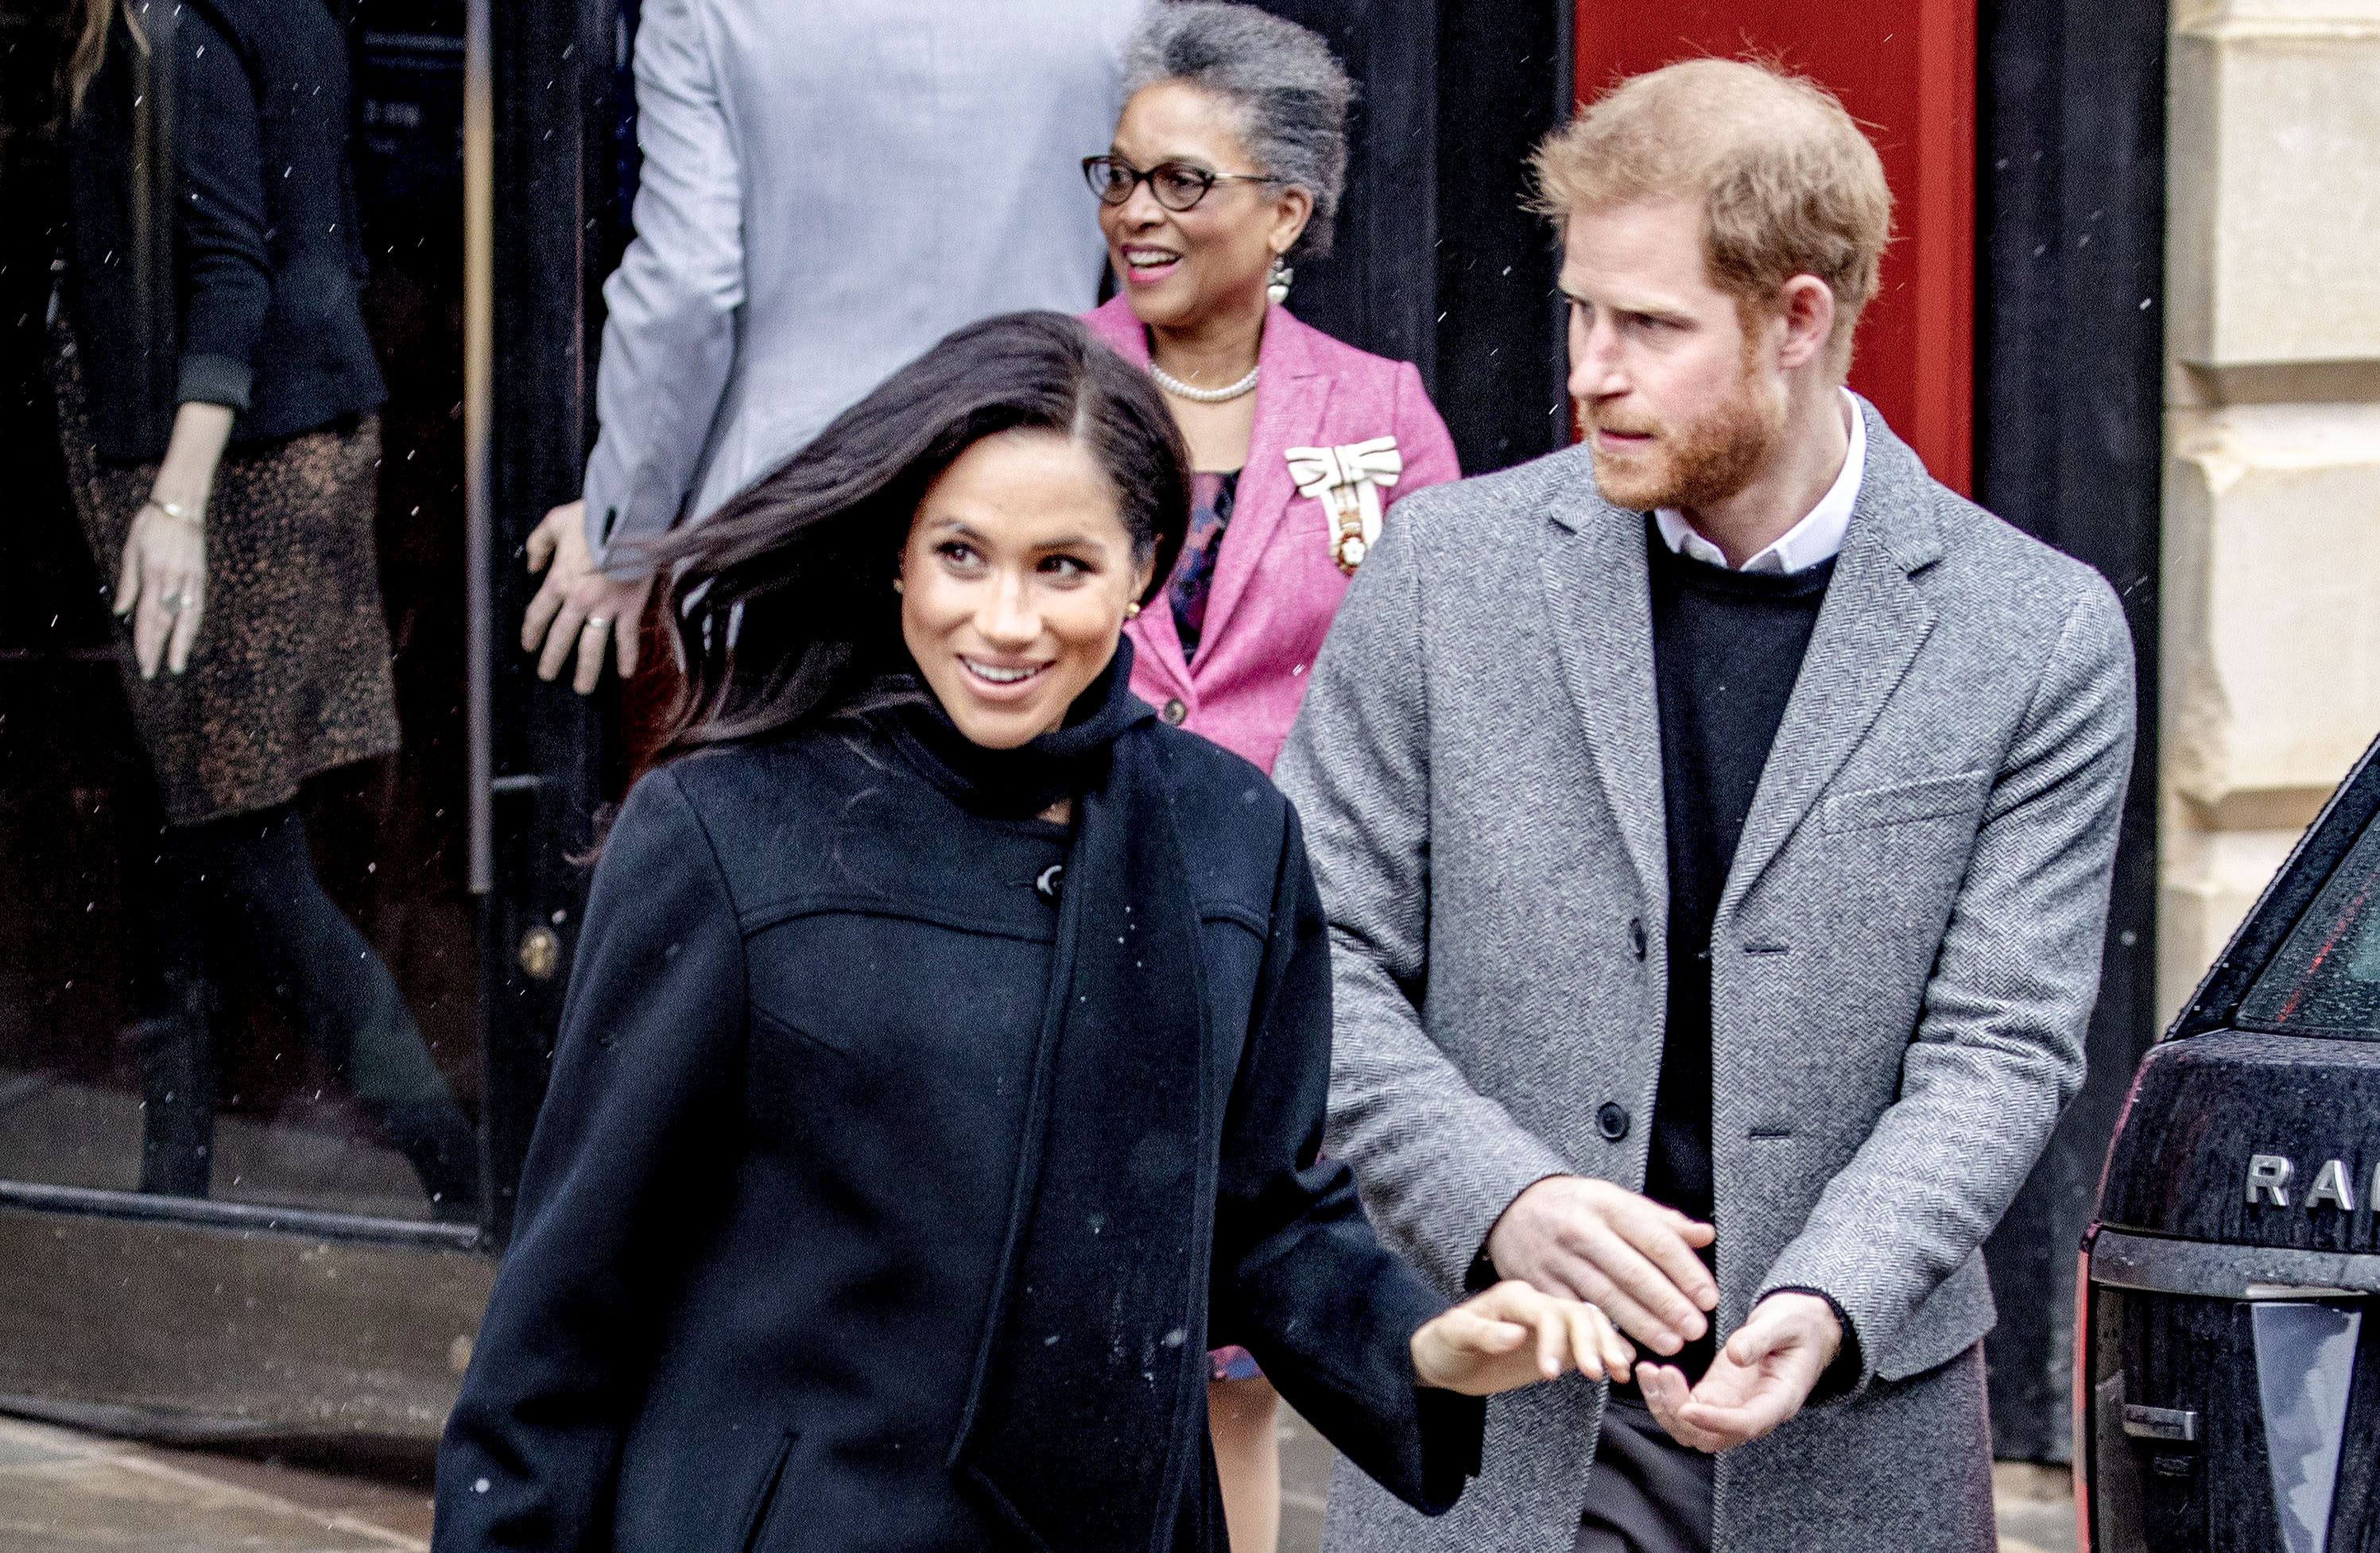 Meghan Markle makes a surprise appearance during Prince Harry's speech